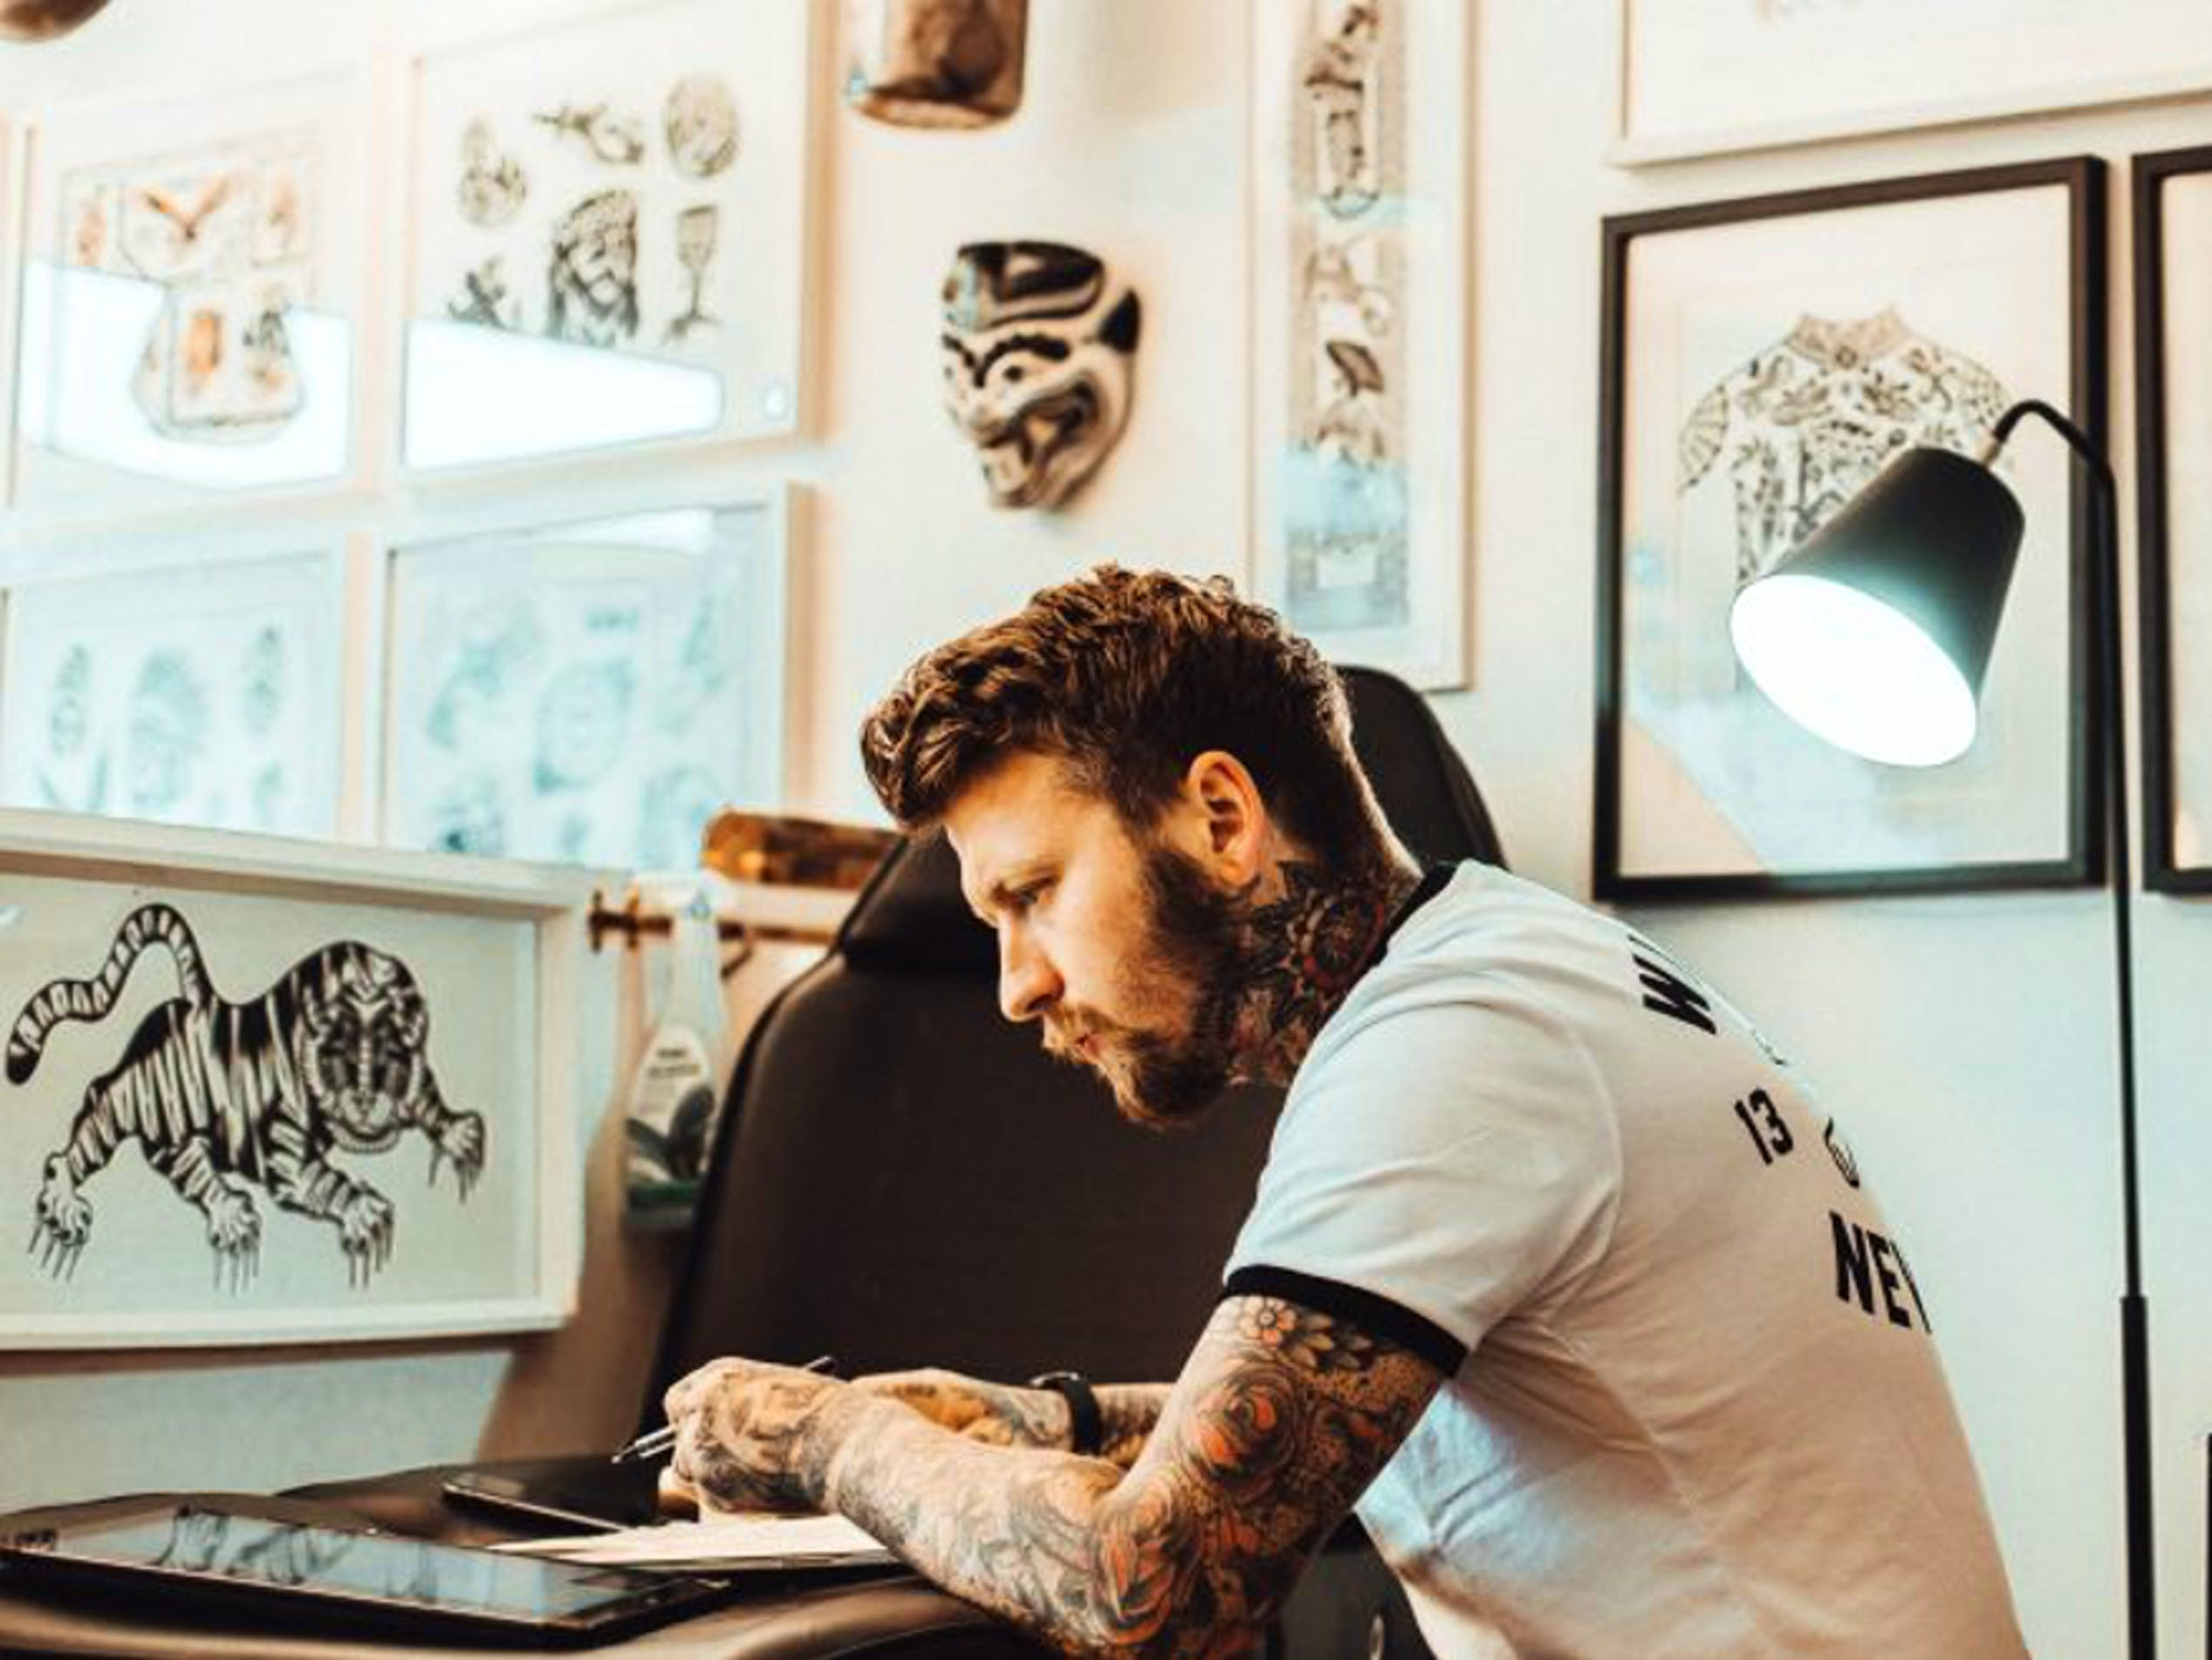 Vagabond Tattoo in London has a reputation for extraordinary custom designs. Here, an artist sketches an original piece for a client, checking reference photos along the way.